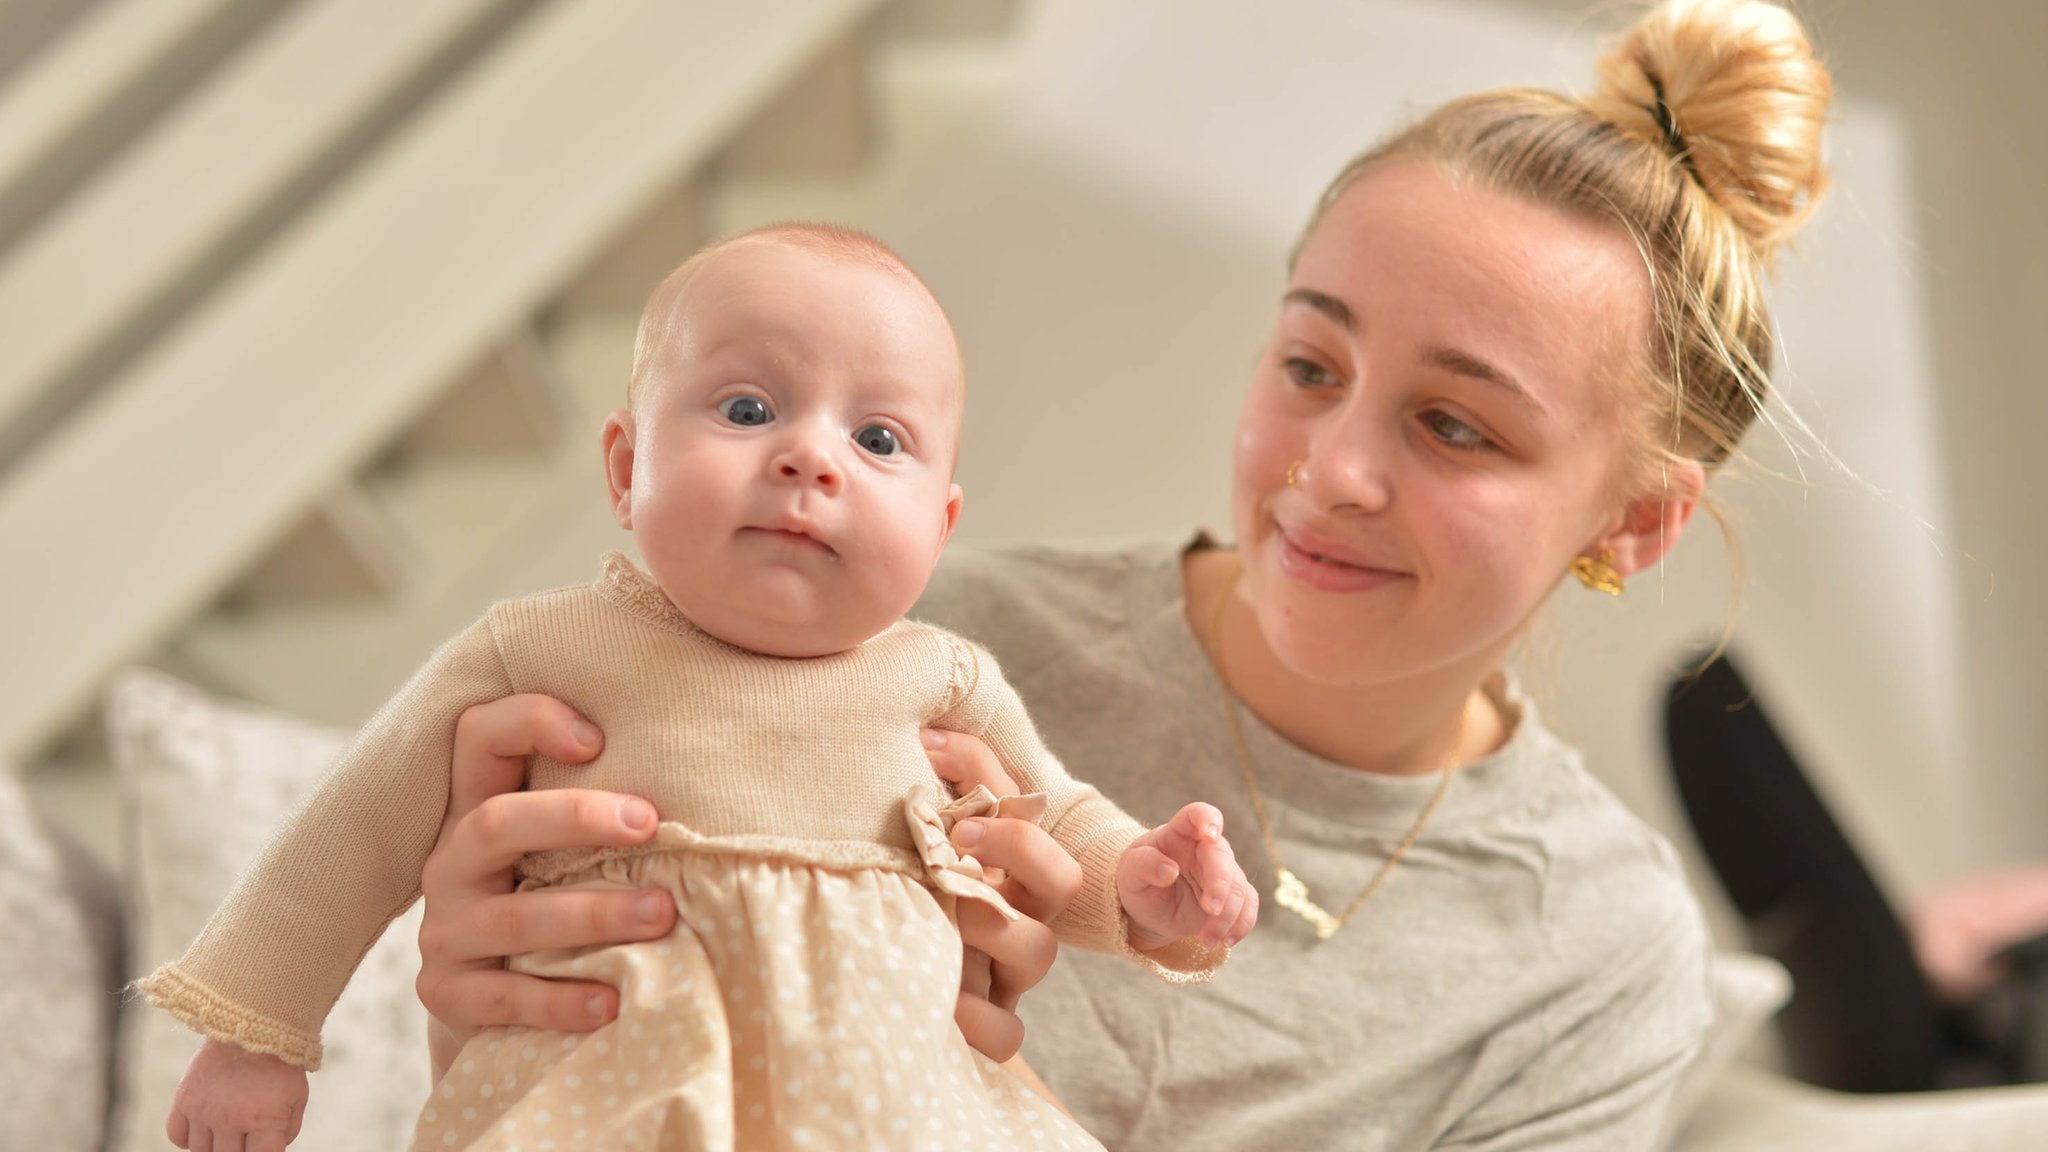 Oldham teenager in coma wakes up with 'surprise' baby